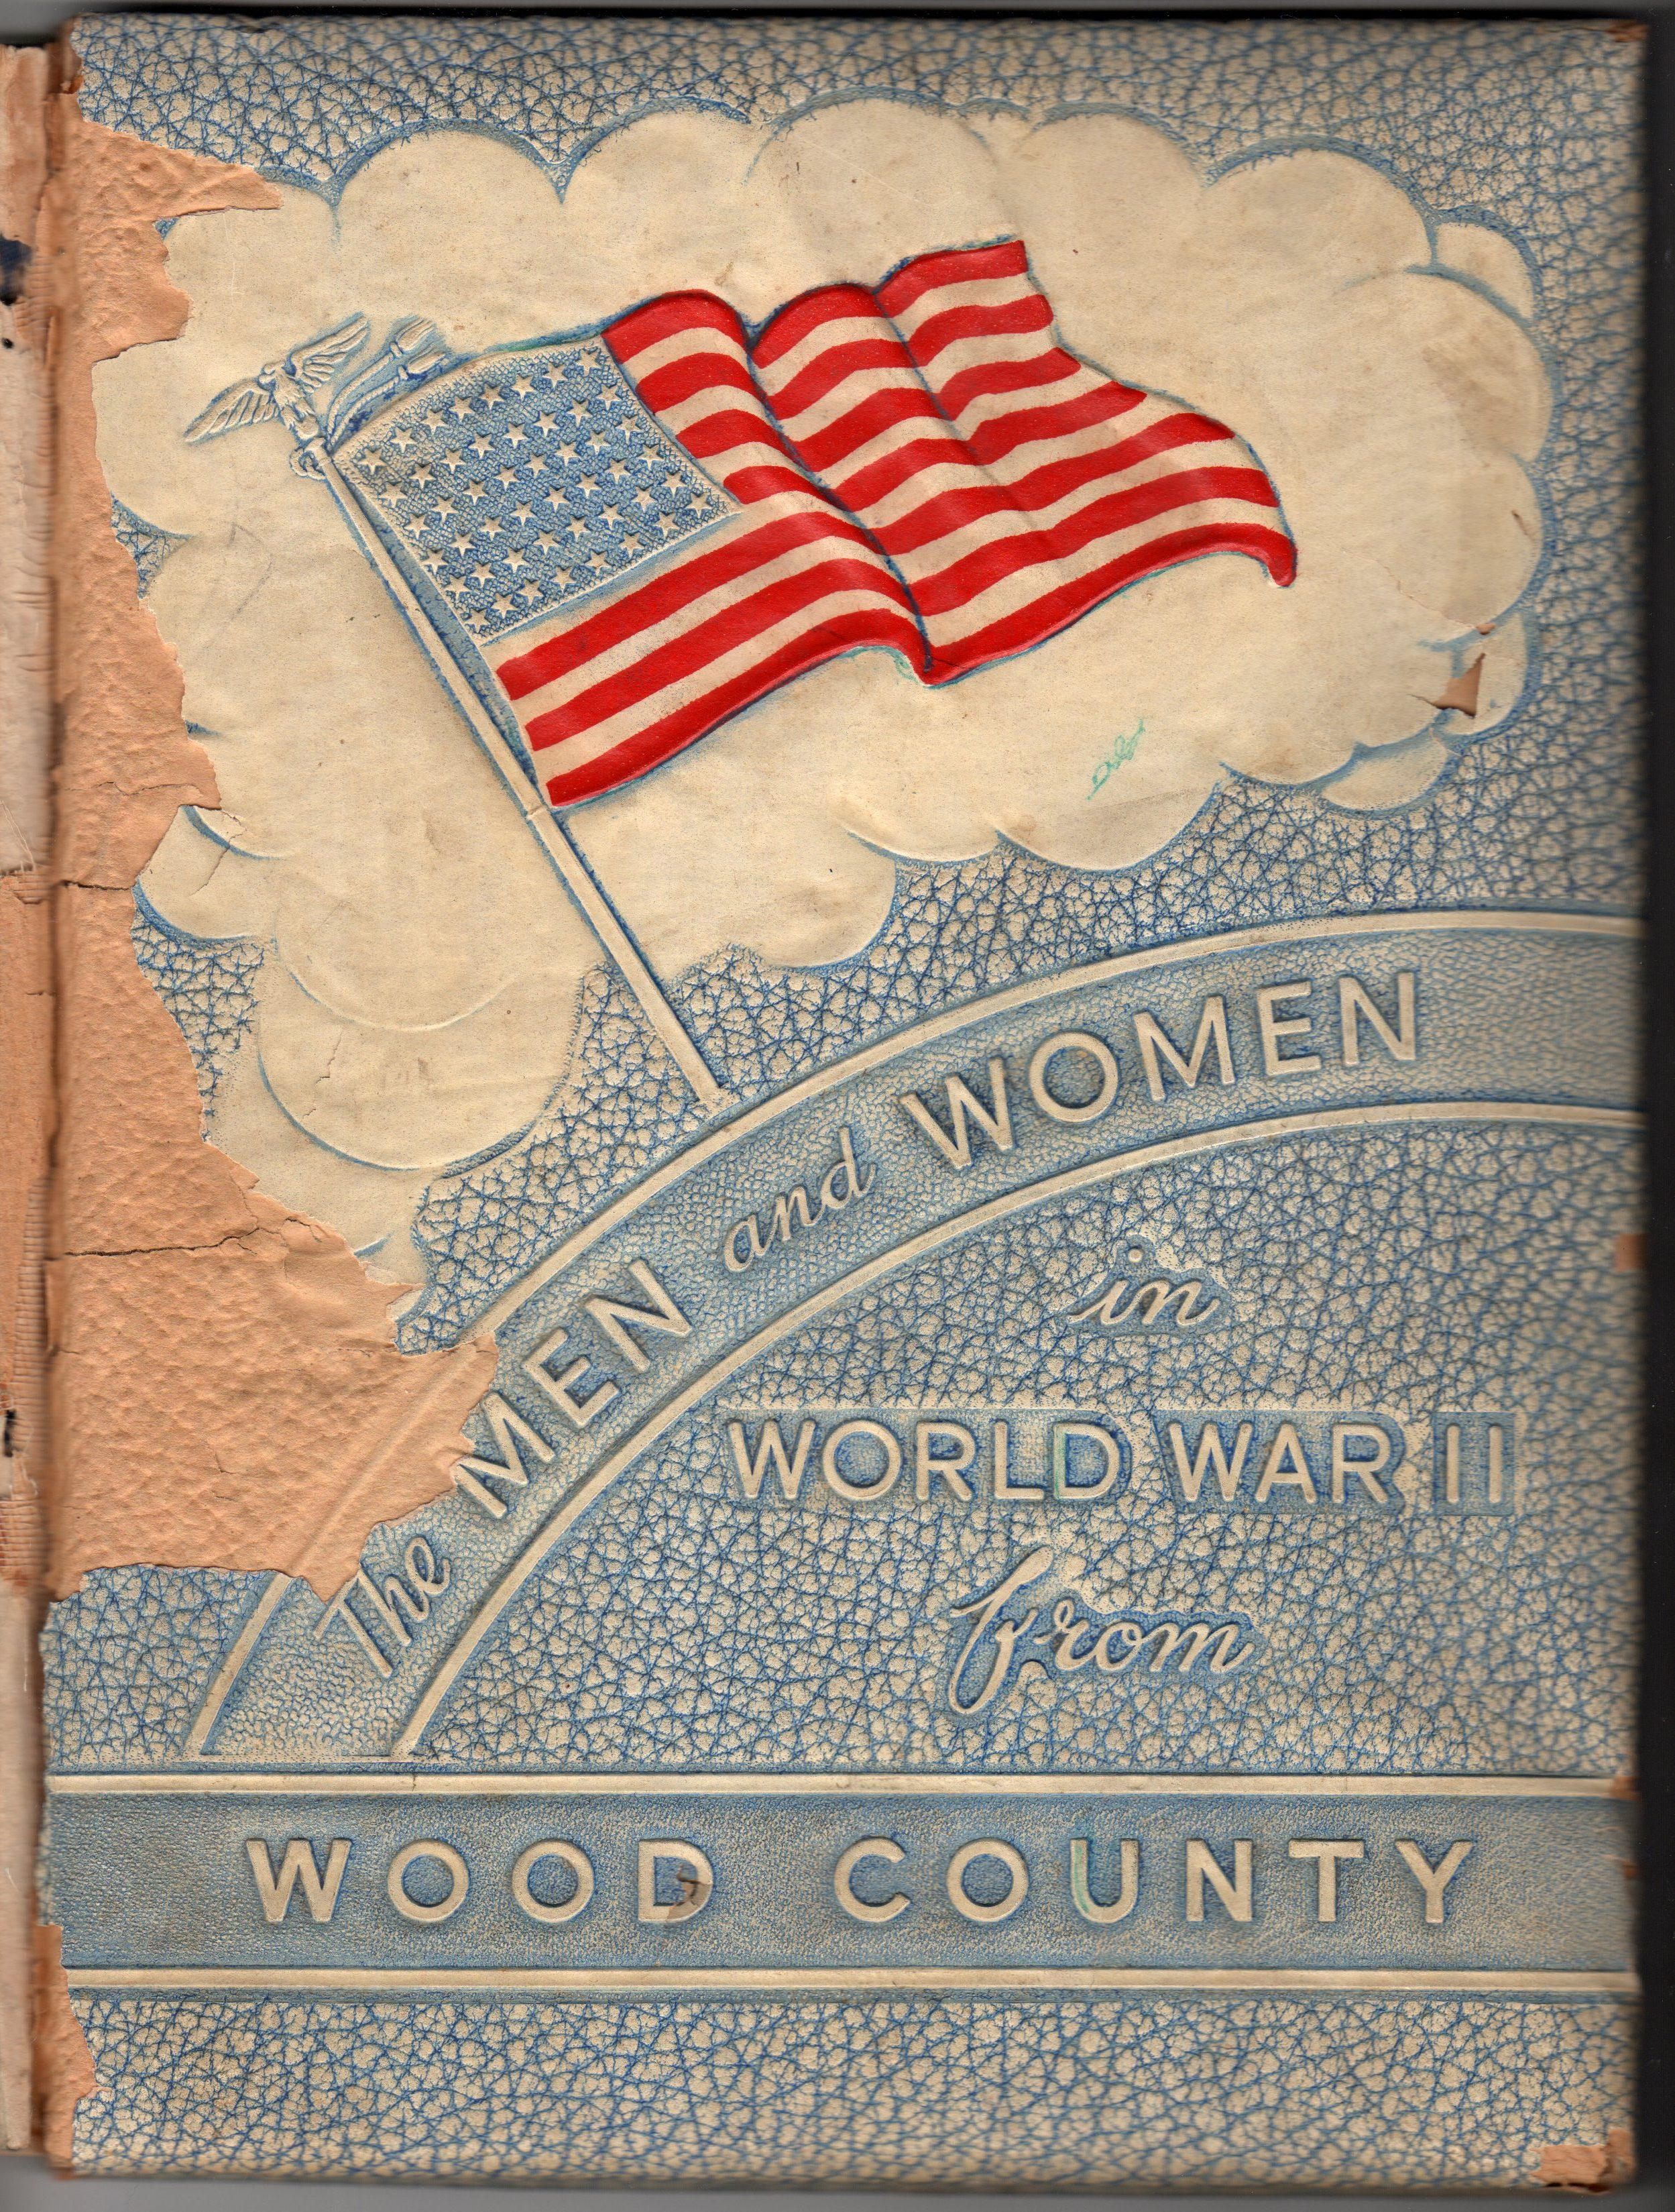 Men and women in the Armed Forces fromWoods County Texas